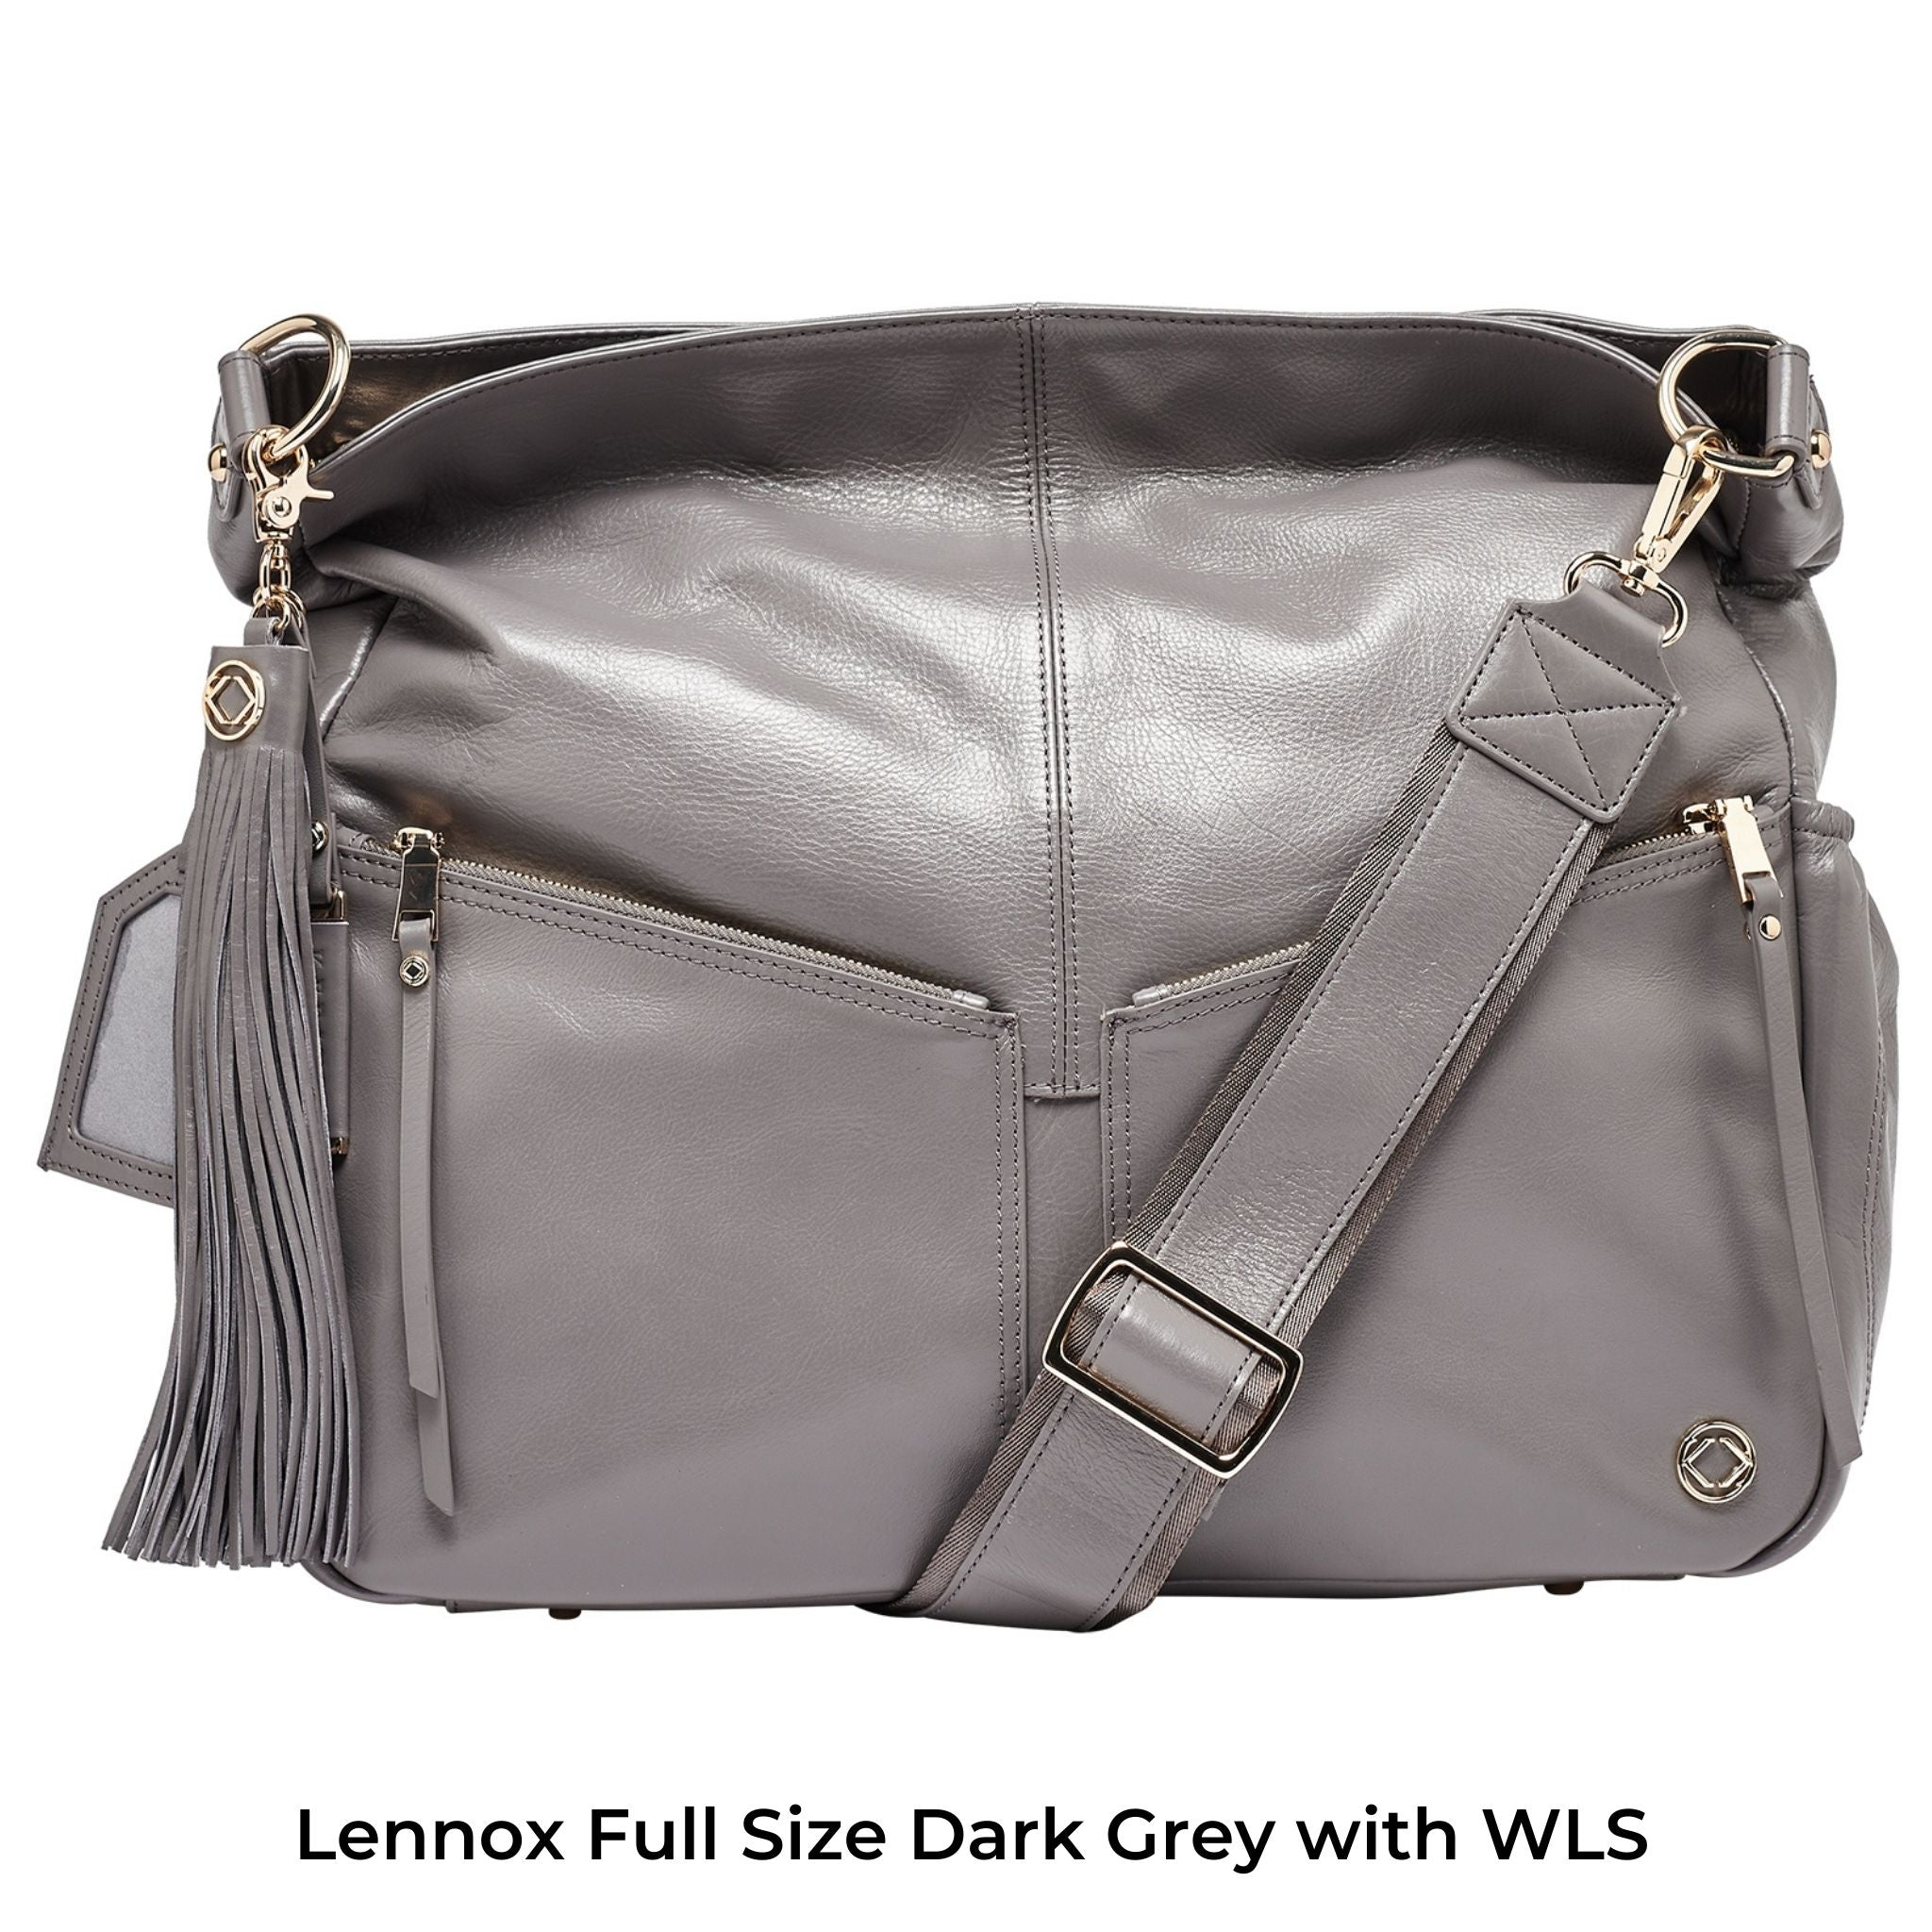 Wide Leather Cross Body Strap - Sale